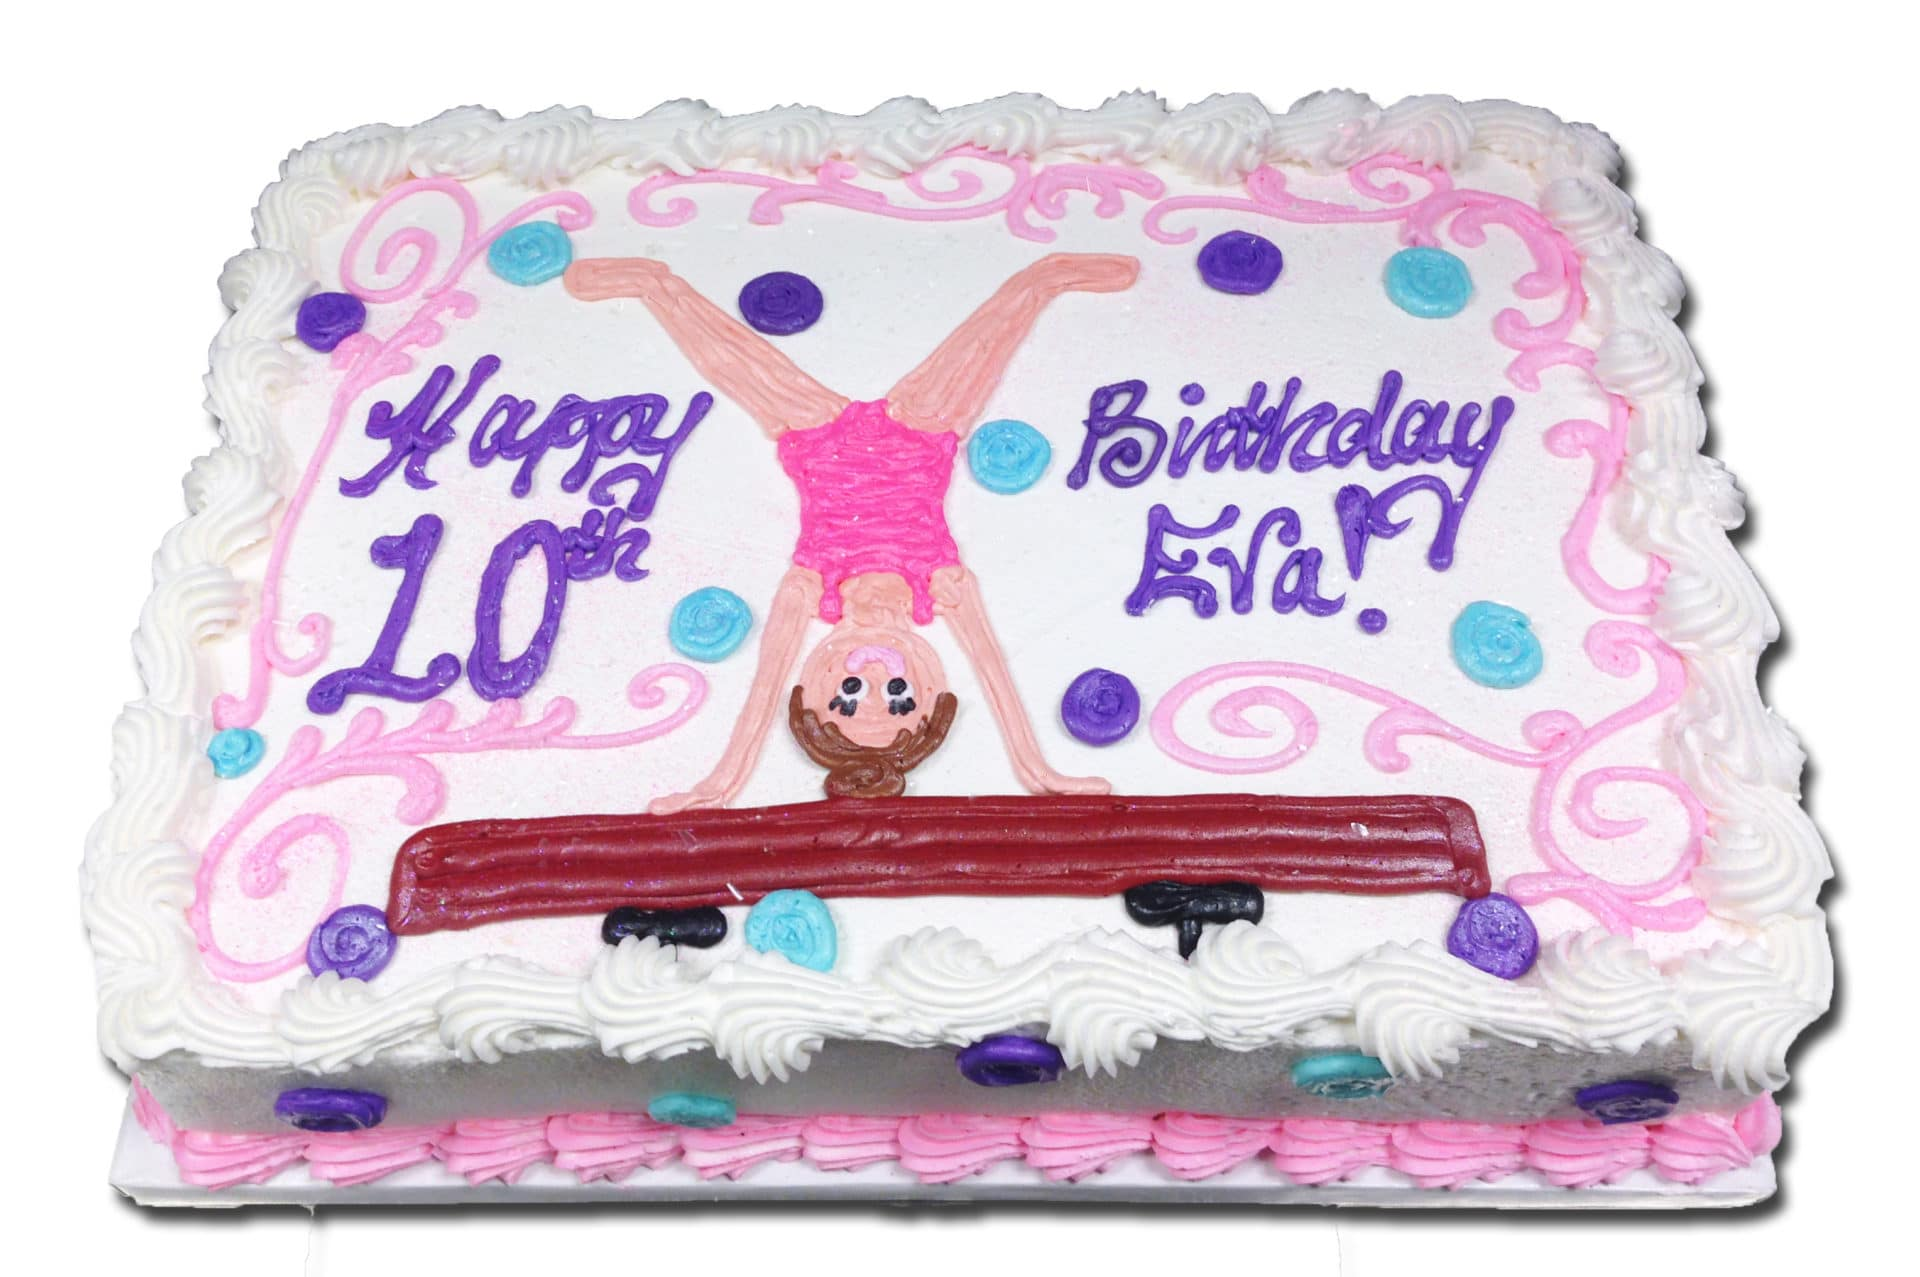 Marvelous Kids And Character 47 Gymnastics Fun Aggies Bakery Cake Shop Personalised Birthday Cards Paralily Jamesorg